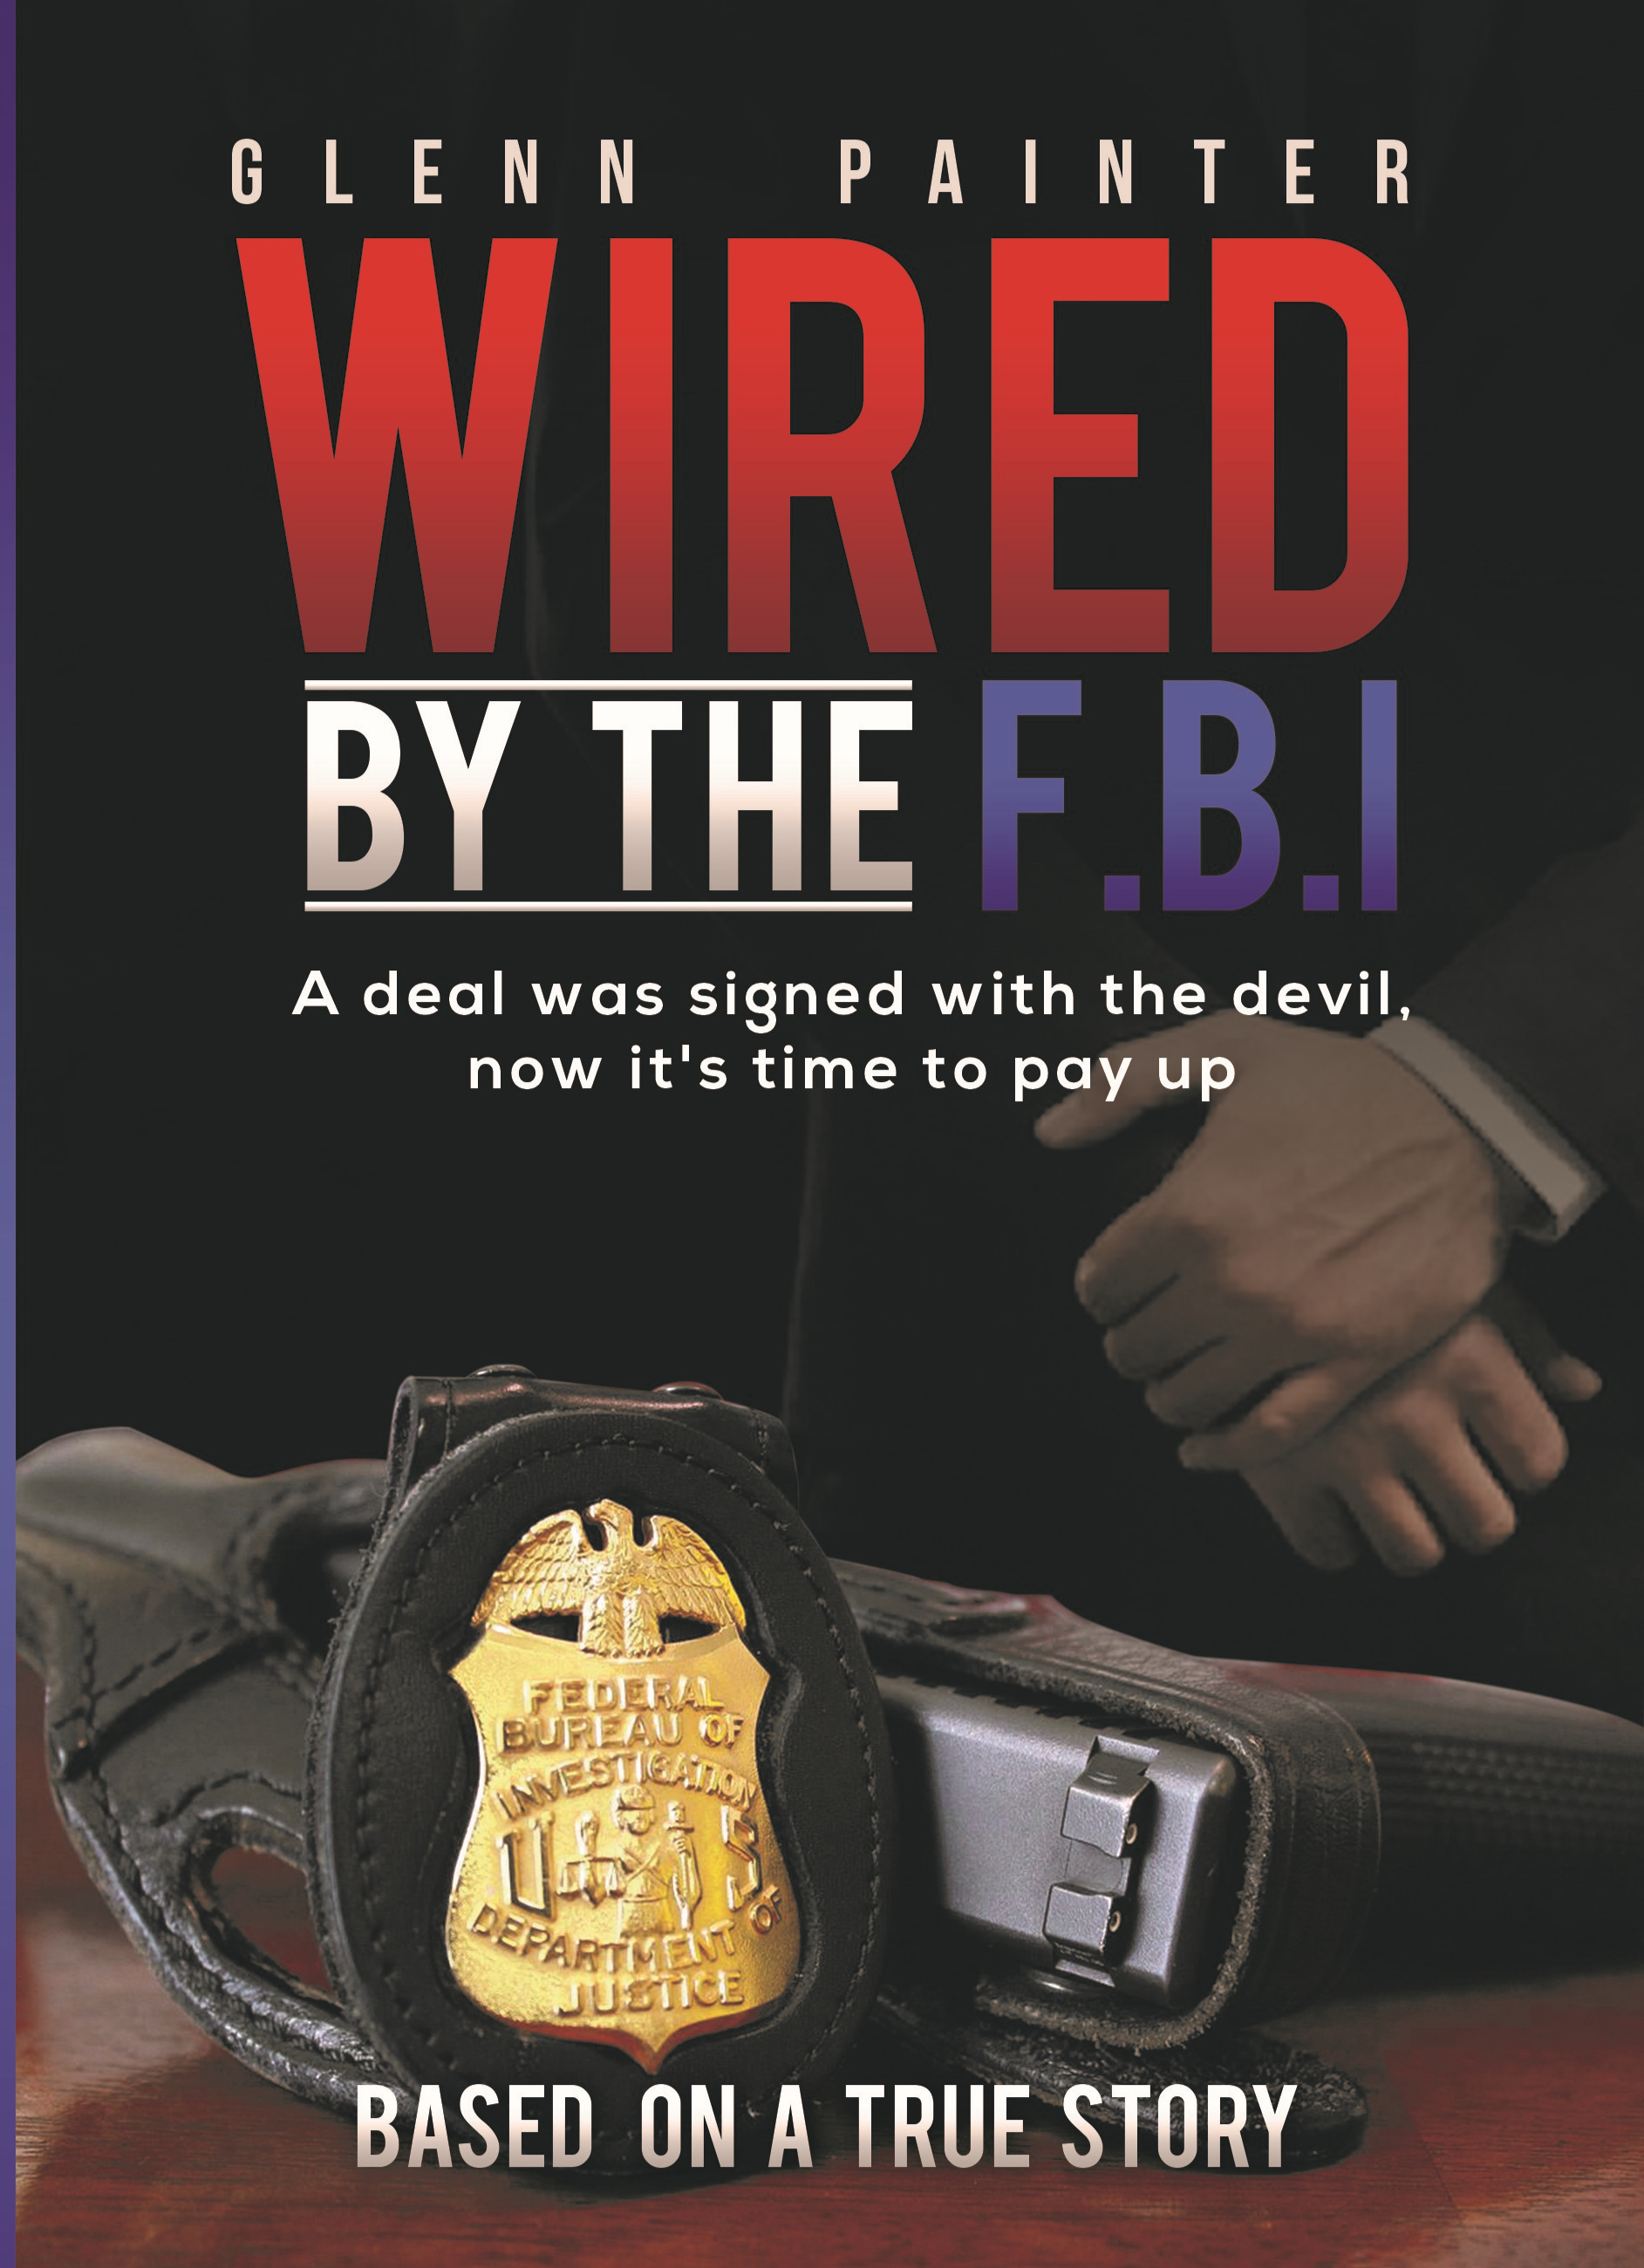 WIRED by the FBI